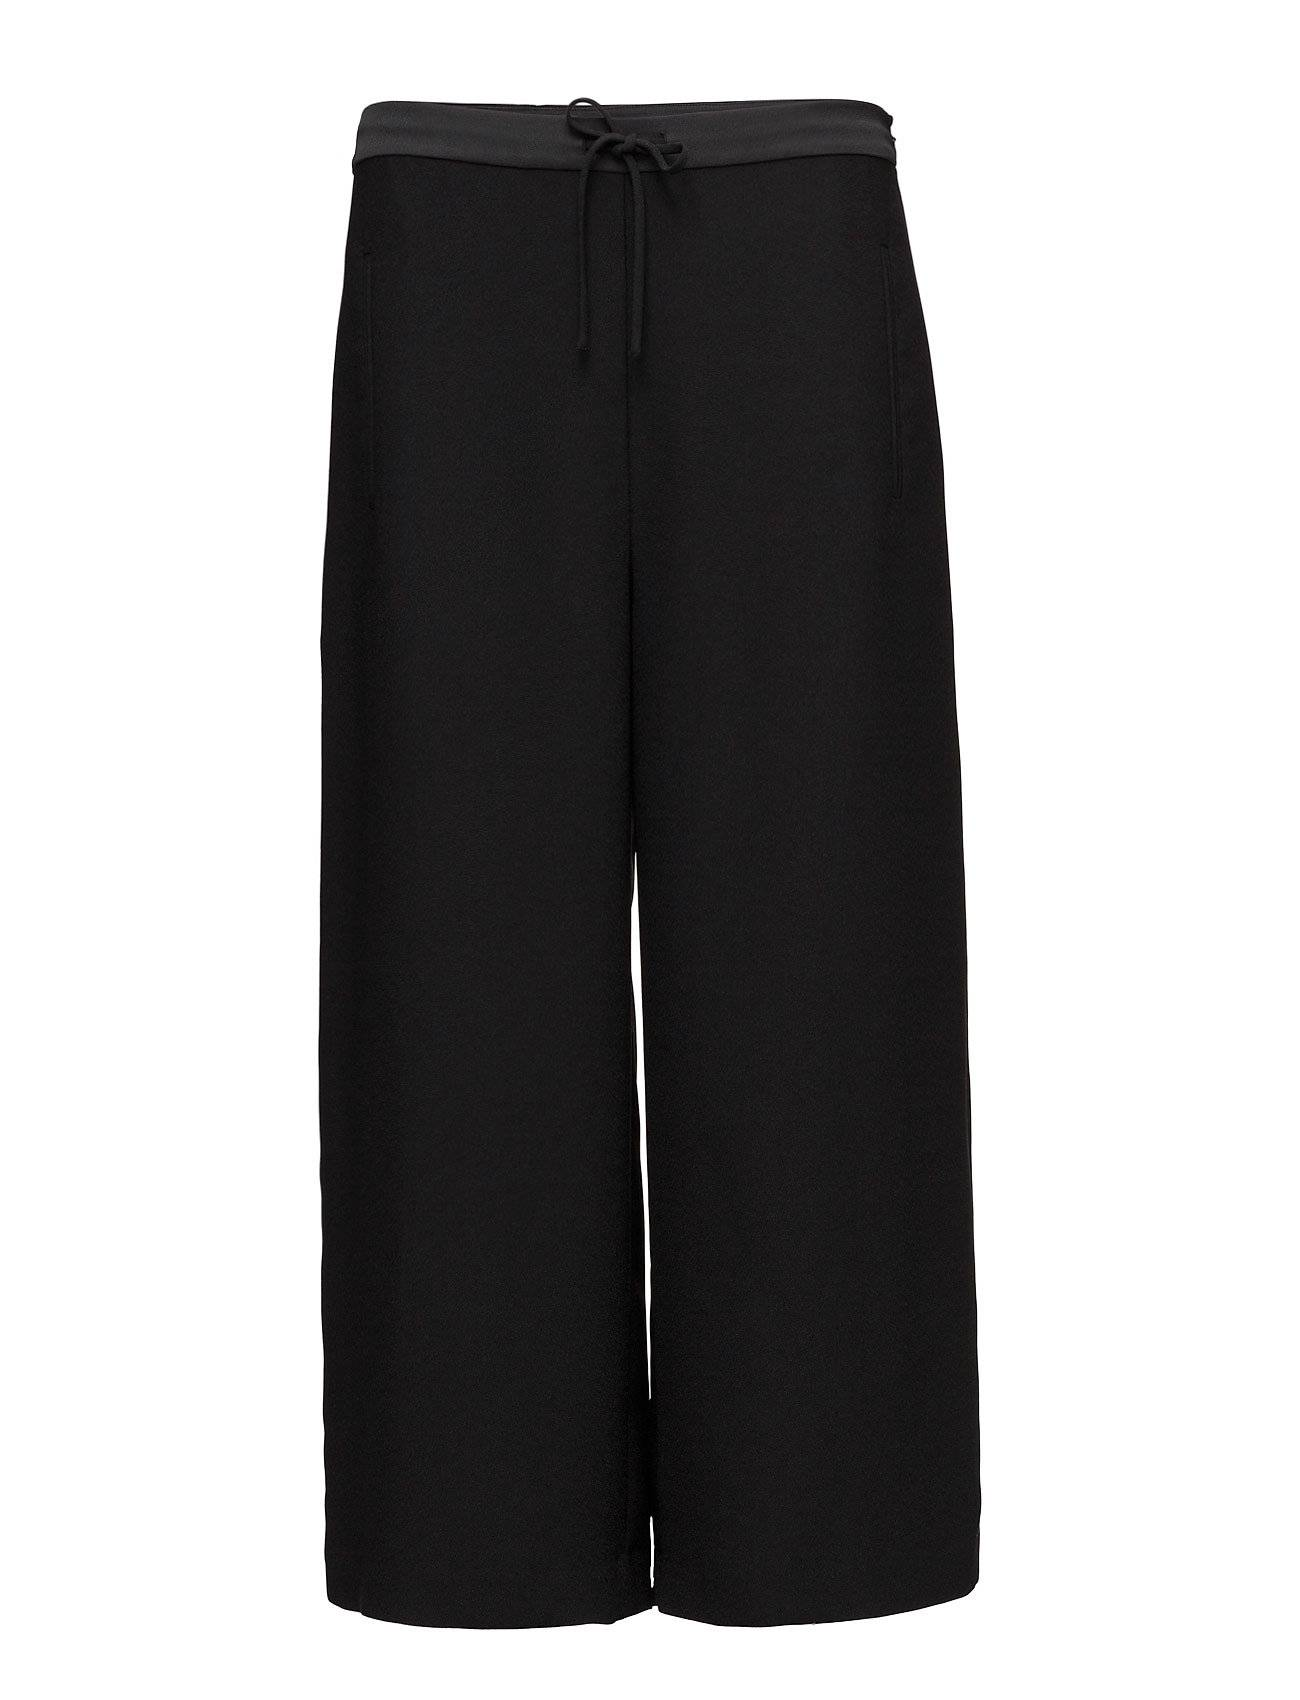 T by Alexander Wang Poly Satin Crepe Wide Legankle Length Pant